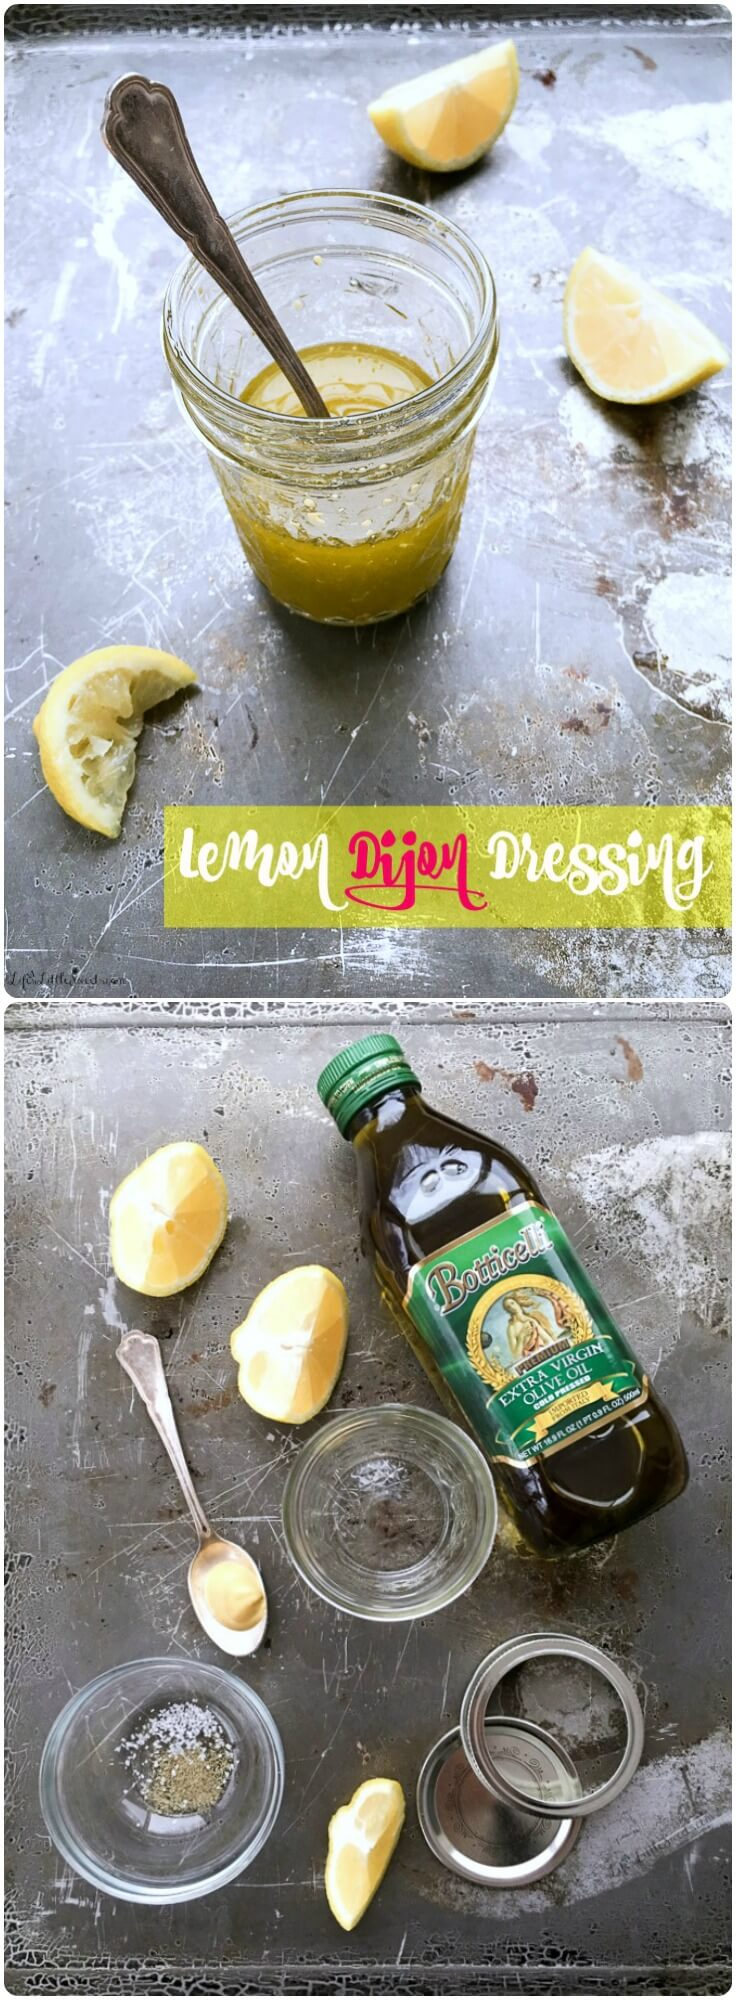 Lemon Dijon Dressing is easy as 1-2-3! Make this simple, 5-ingredient, mason jar salad dressing or marinade and you will think twice (or not at all!) about store-bought salad dressing again!